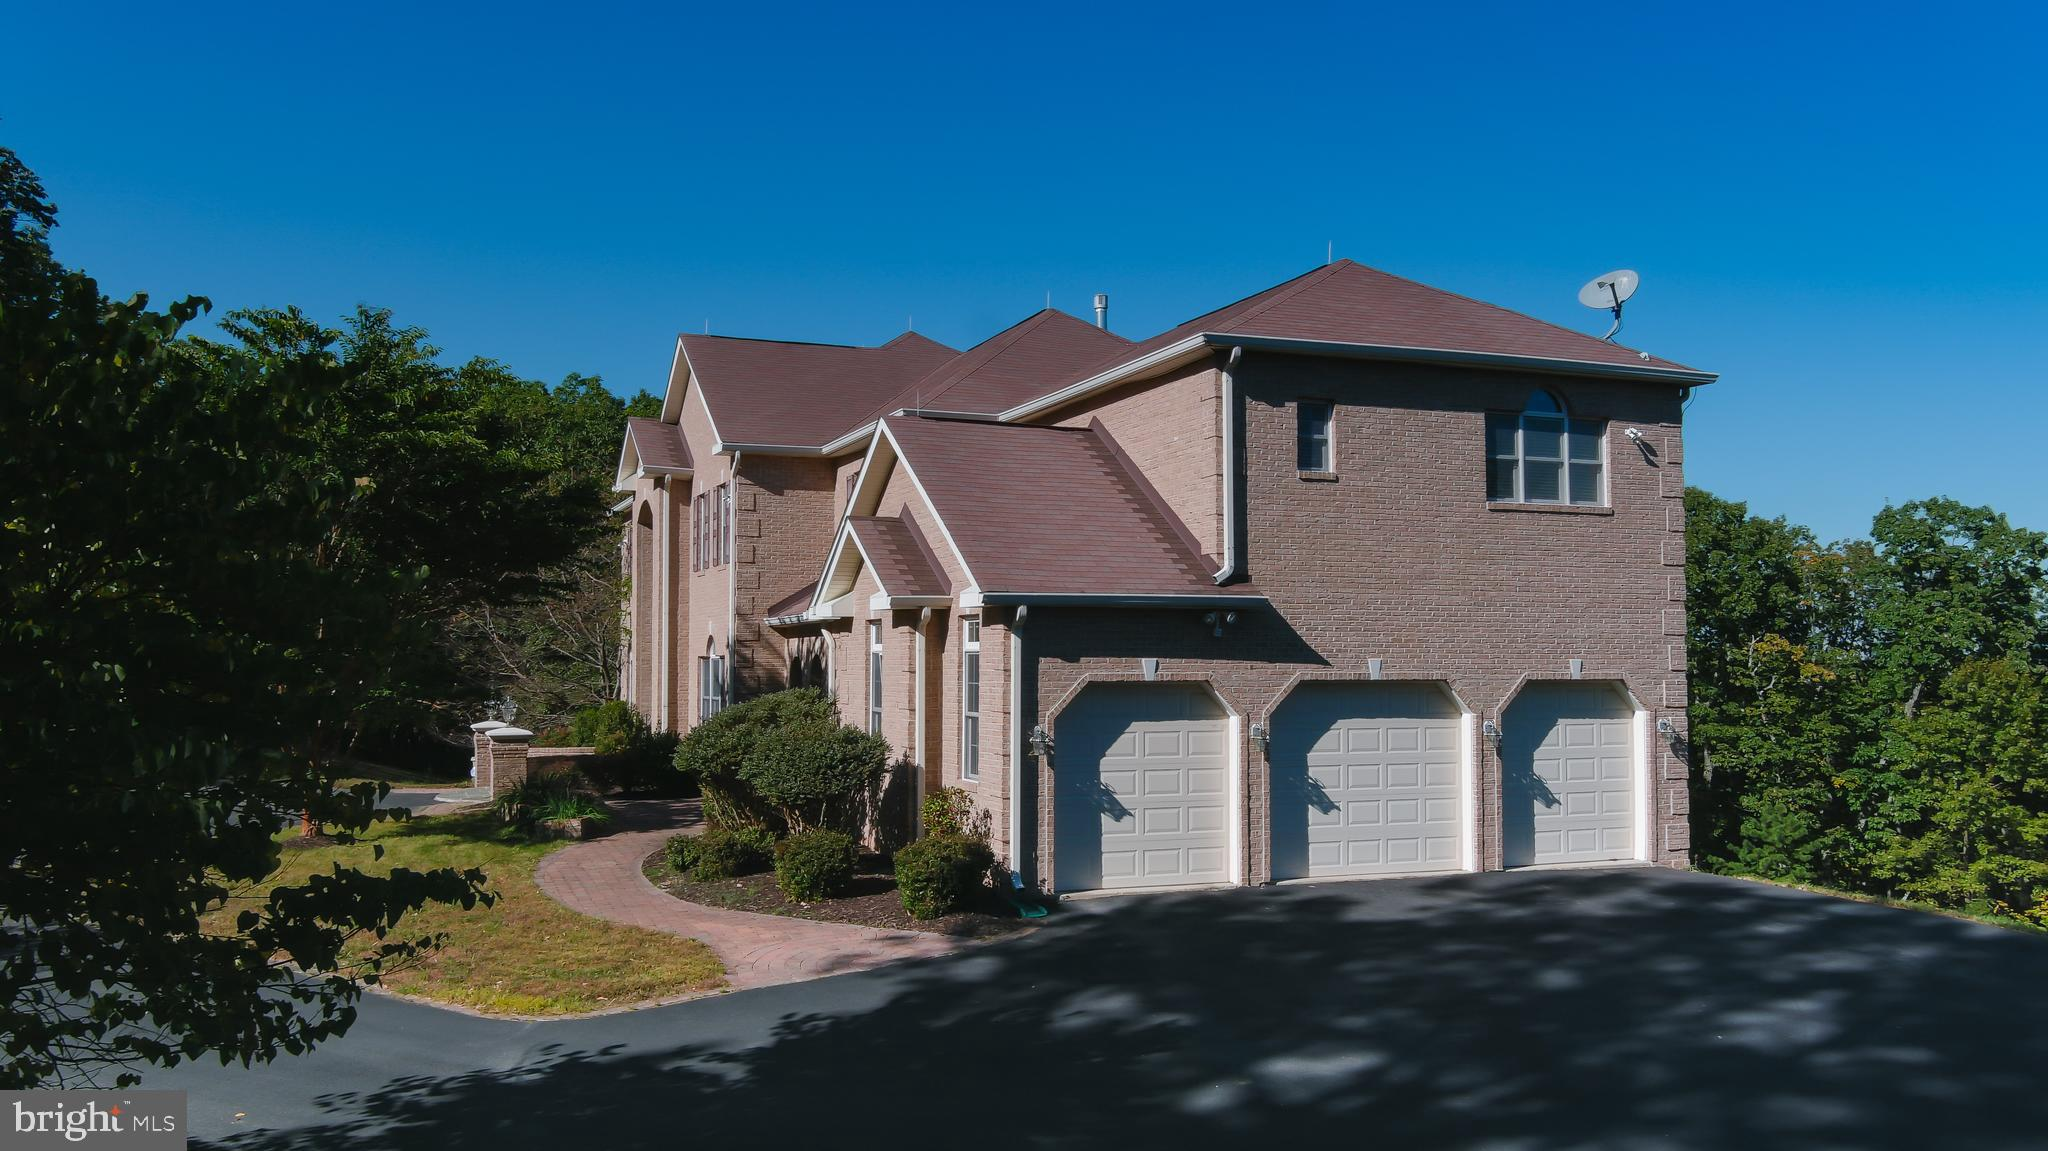 16995 Stormy Drive